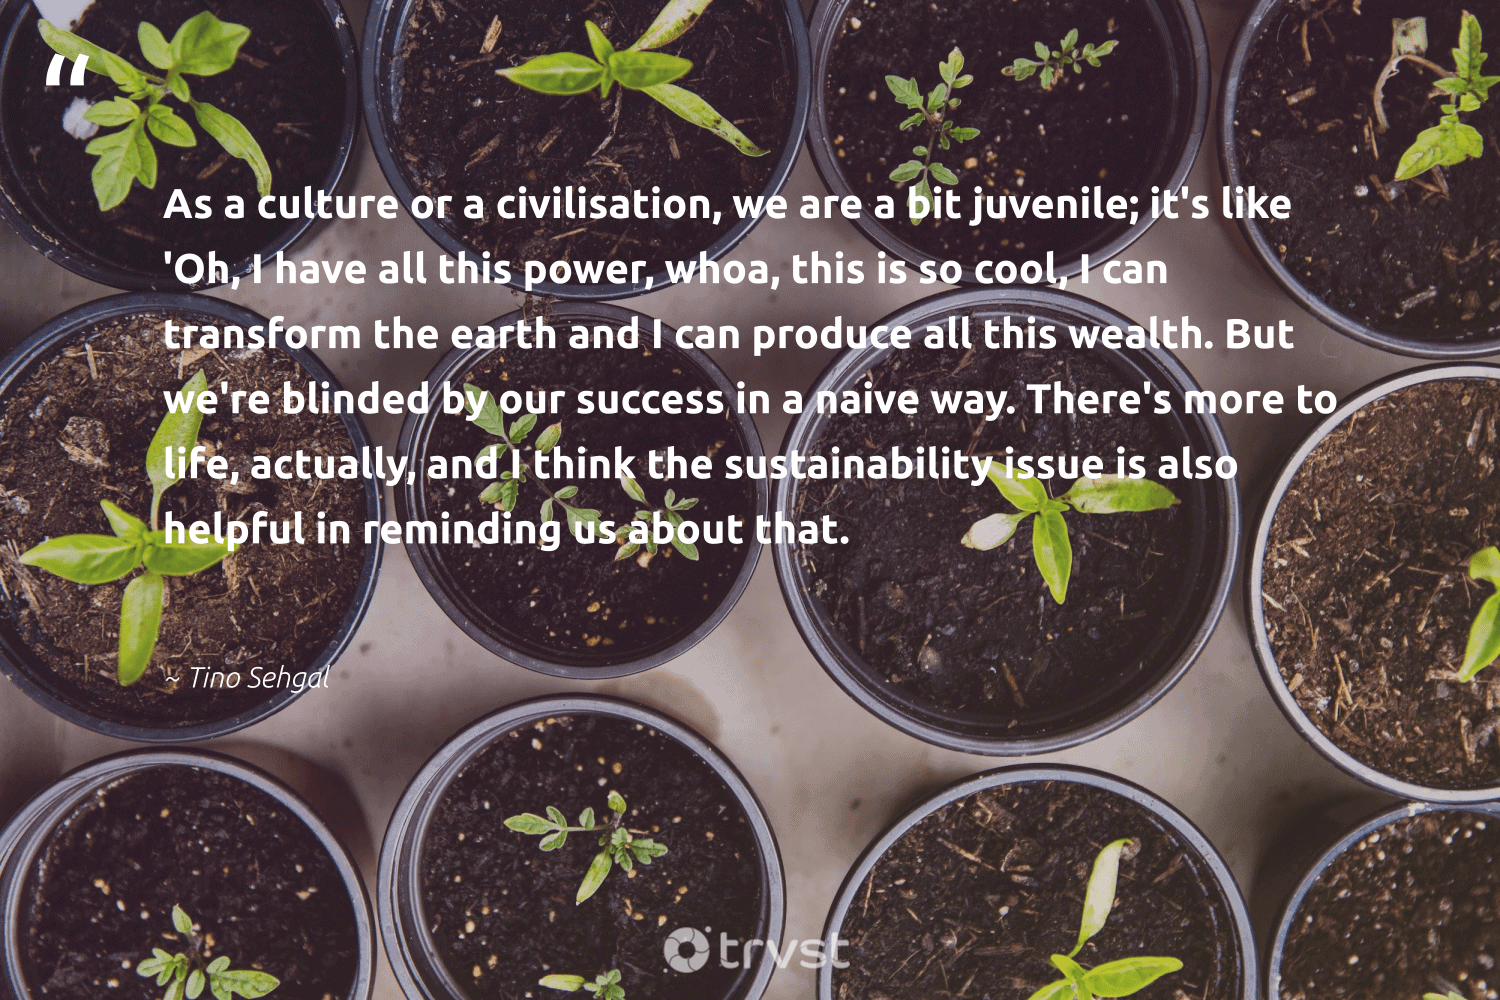 """""""As a culture or a civilisation, we are a bit juvenile; it's like 'Oh, I have all this power, whoa, this is so cool, I can transform the earth and I can produce all this wealth. But we're blinded by our success in a naive way. There's more to life, actually, and I think the sustainability issue is also helpful in reminding us about that.""""  - Tino Sehgal #trvst #quotes #sustainability #earth #success #planet #greenliving #wildernessnation #gogreen #nature #sustainable #climatechange"""